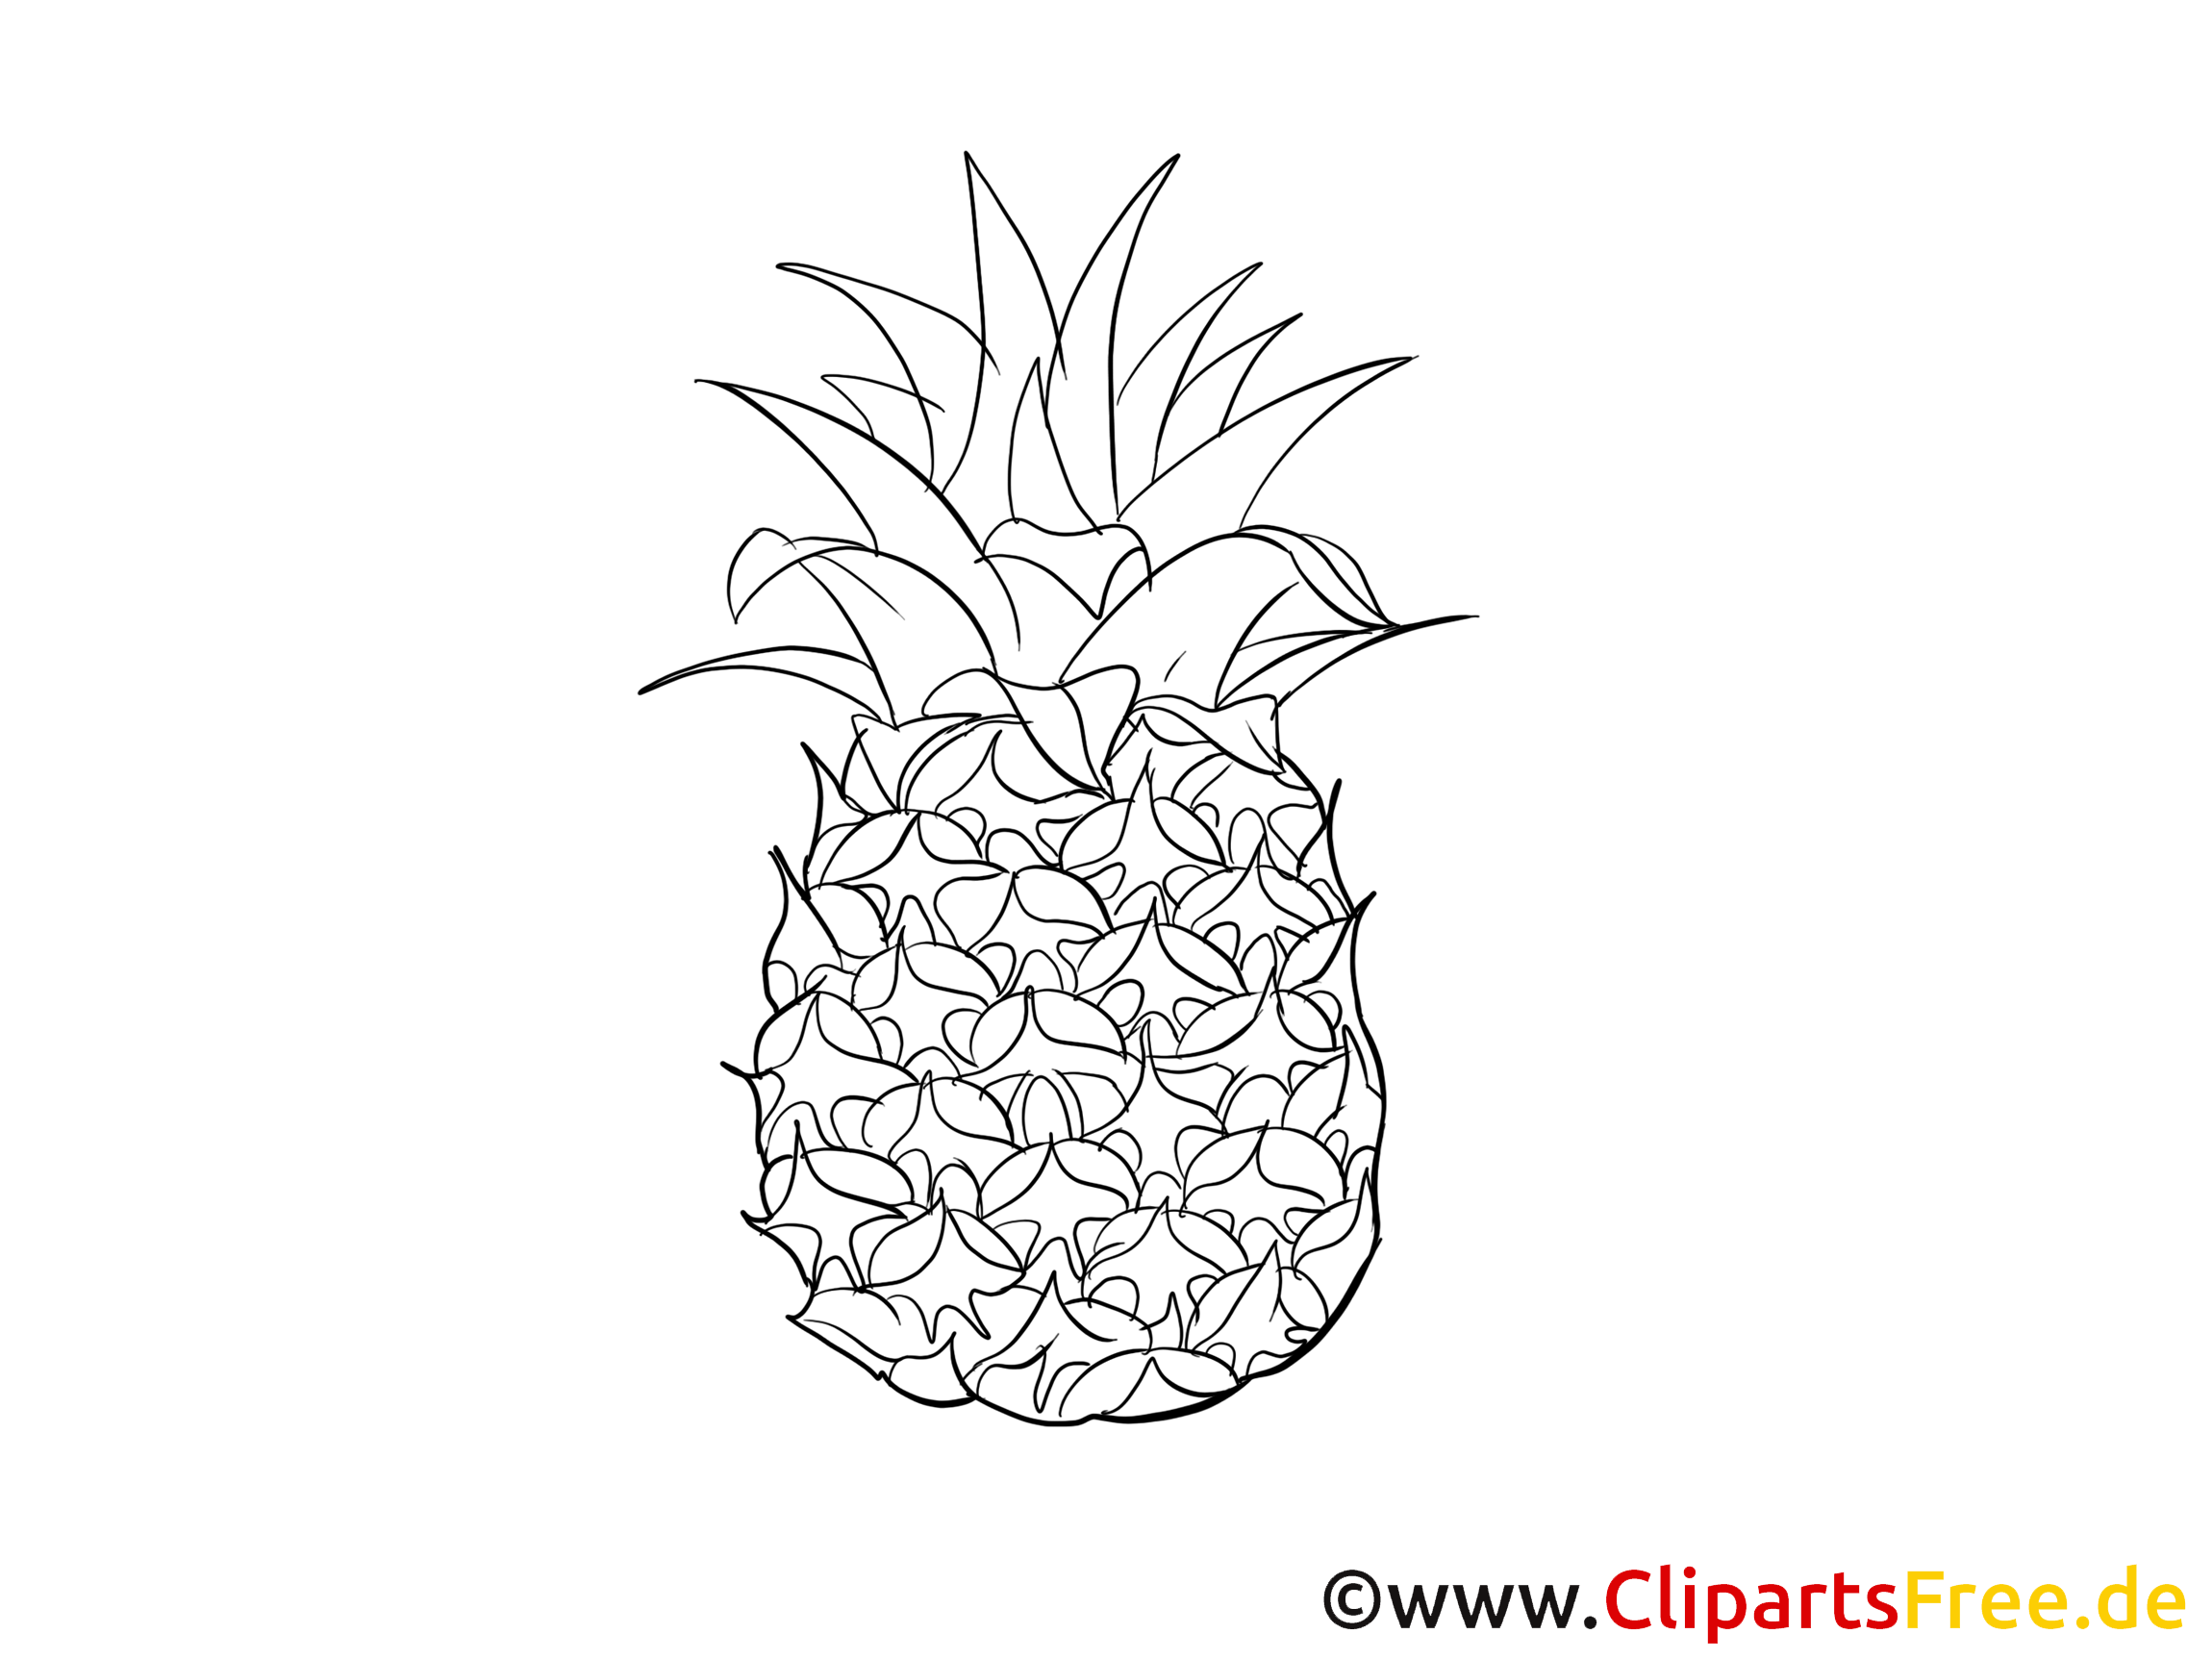 Pen Outline 752054 likewise Musical Notes additionally Clipart Ananas 7864 additionally ZIiM3fFfmCKGzhVH also Mustache Styles For Black Men. on 278